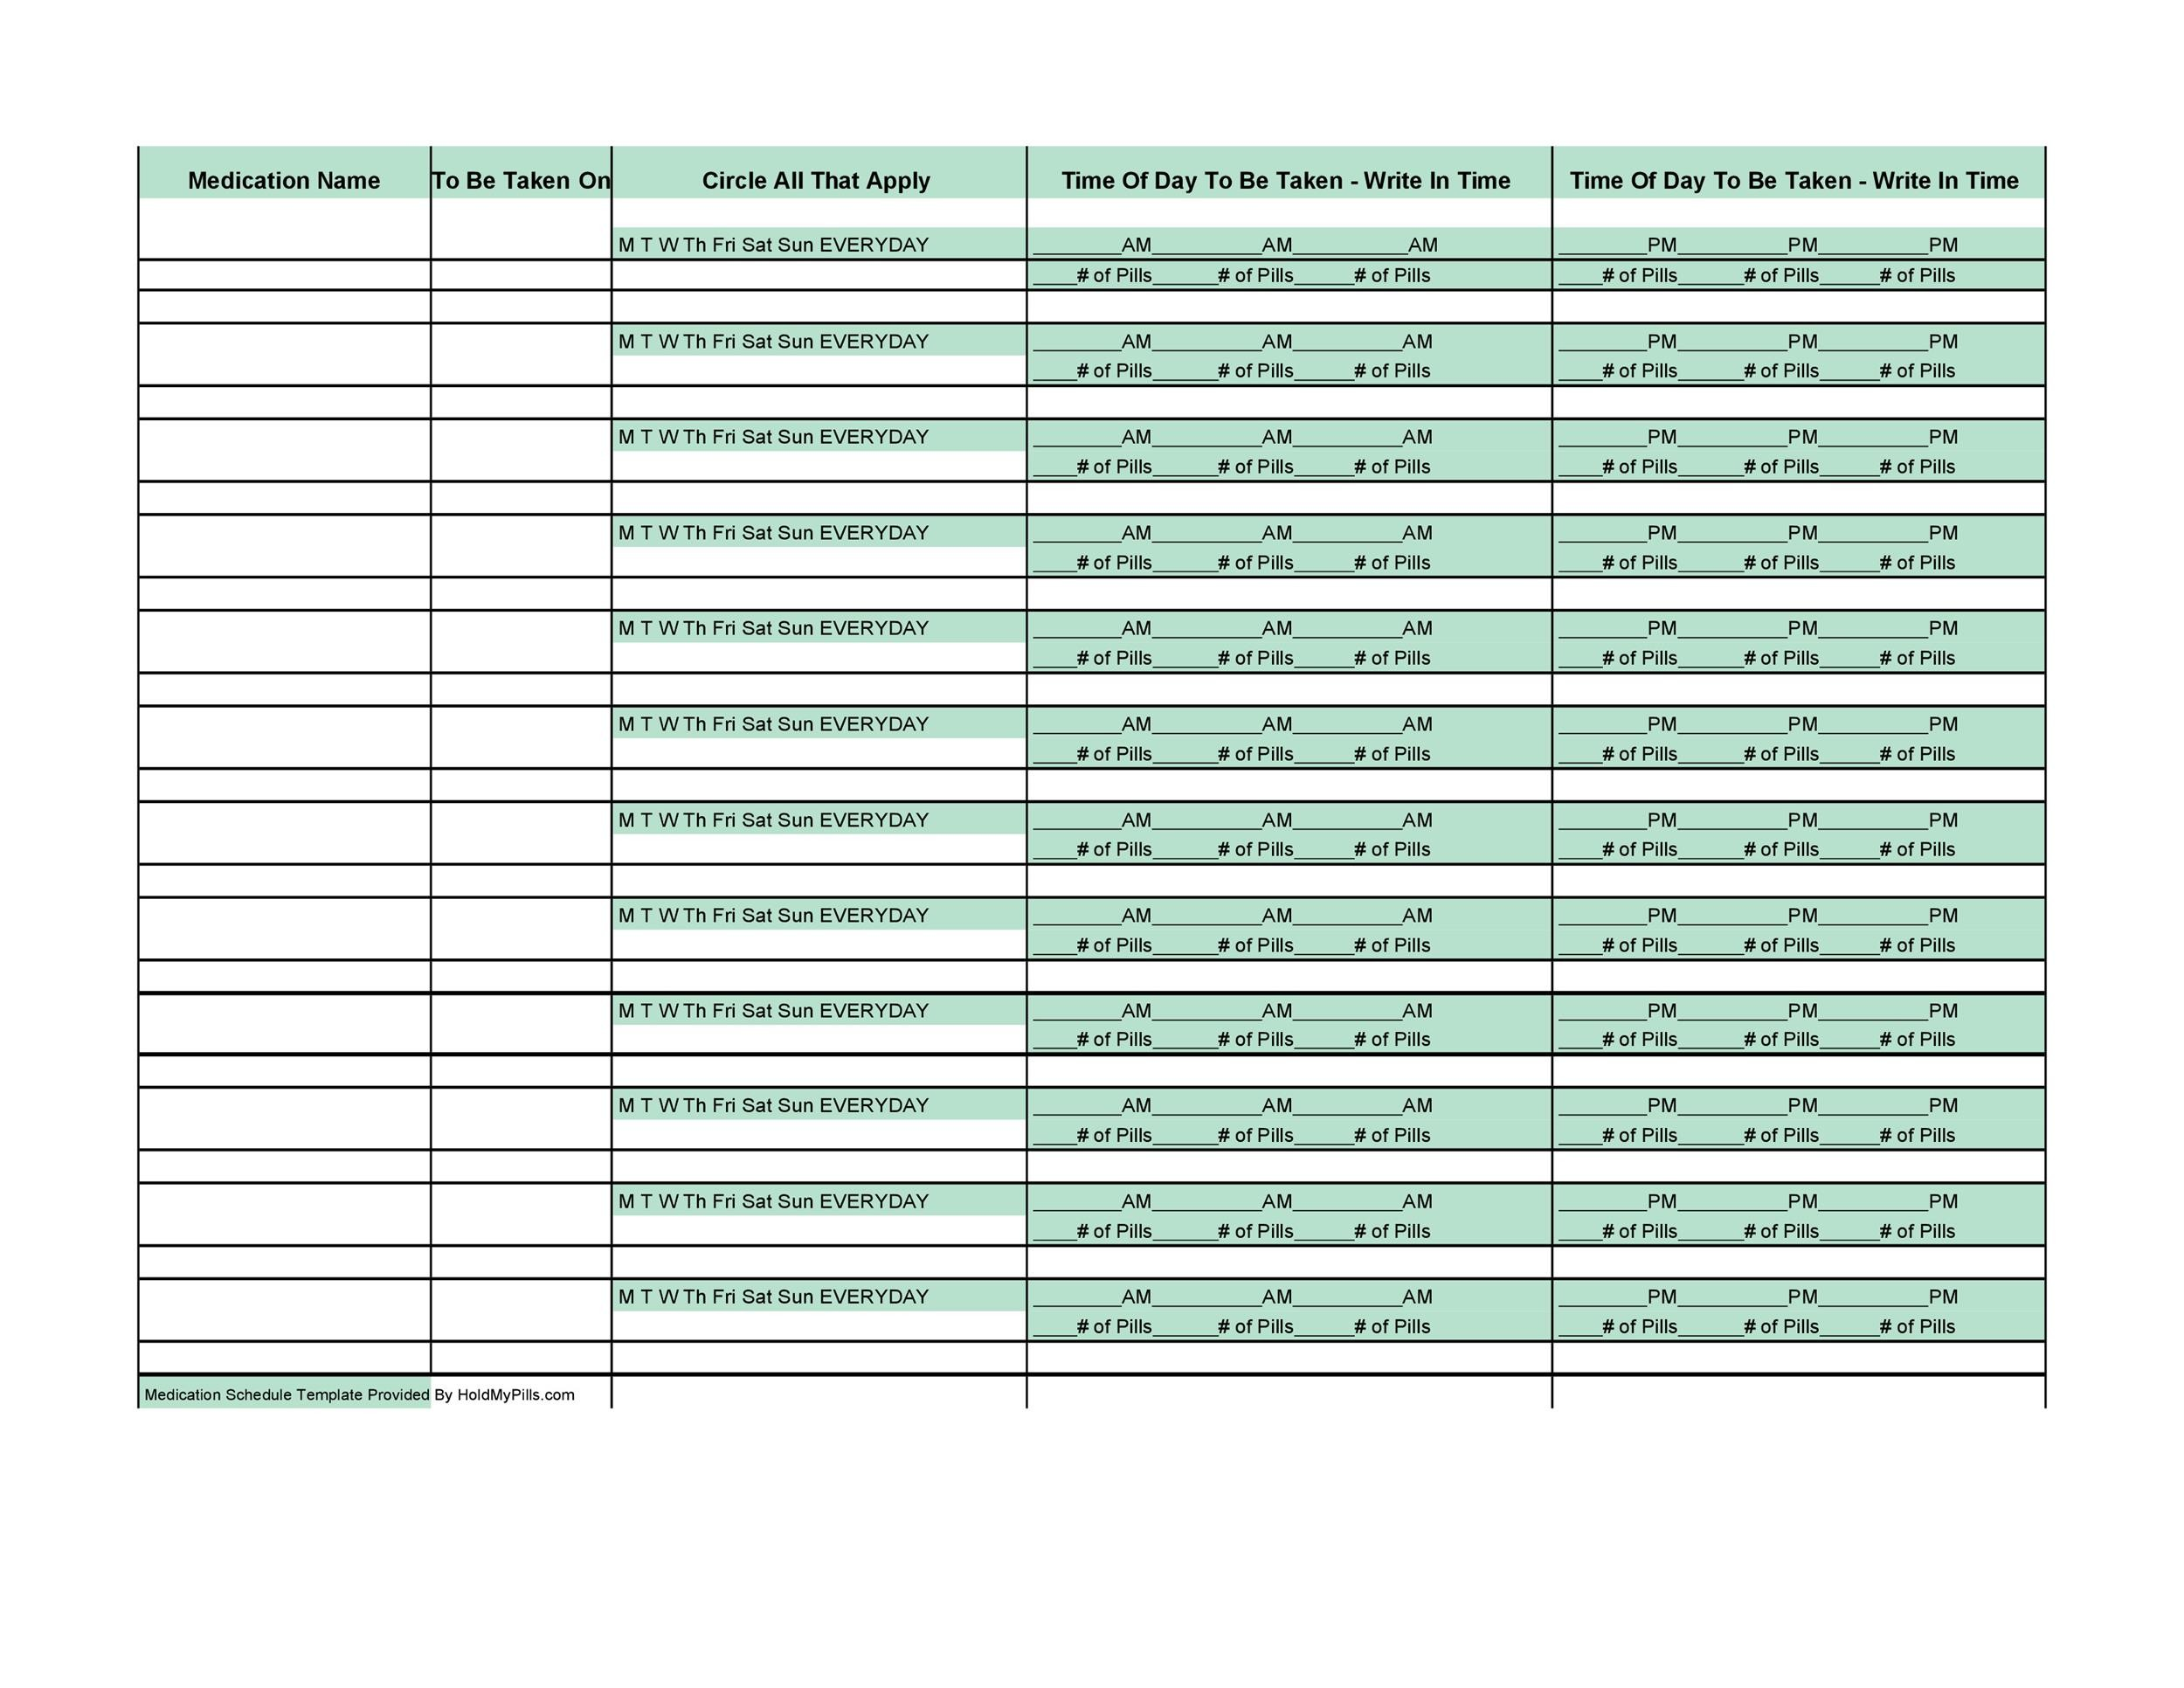 Free medication schedule template 09